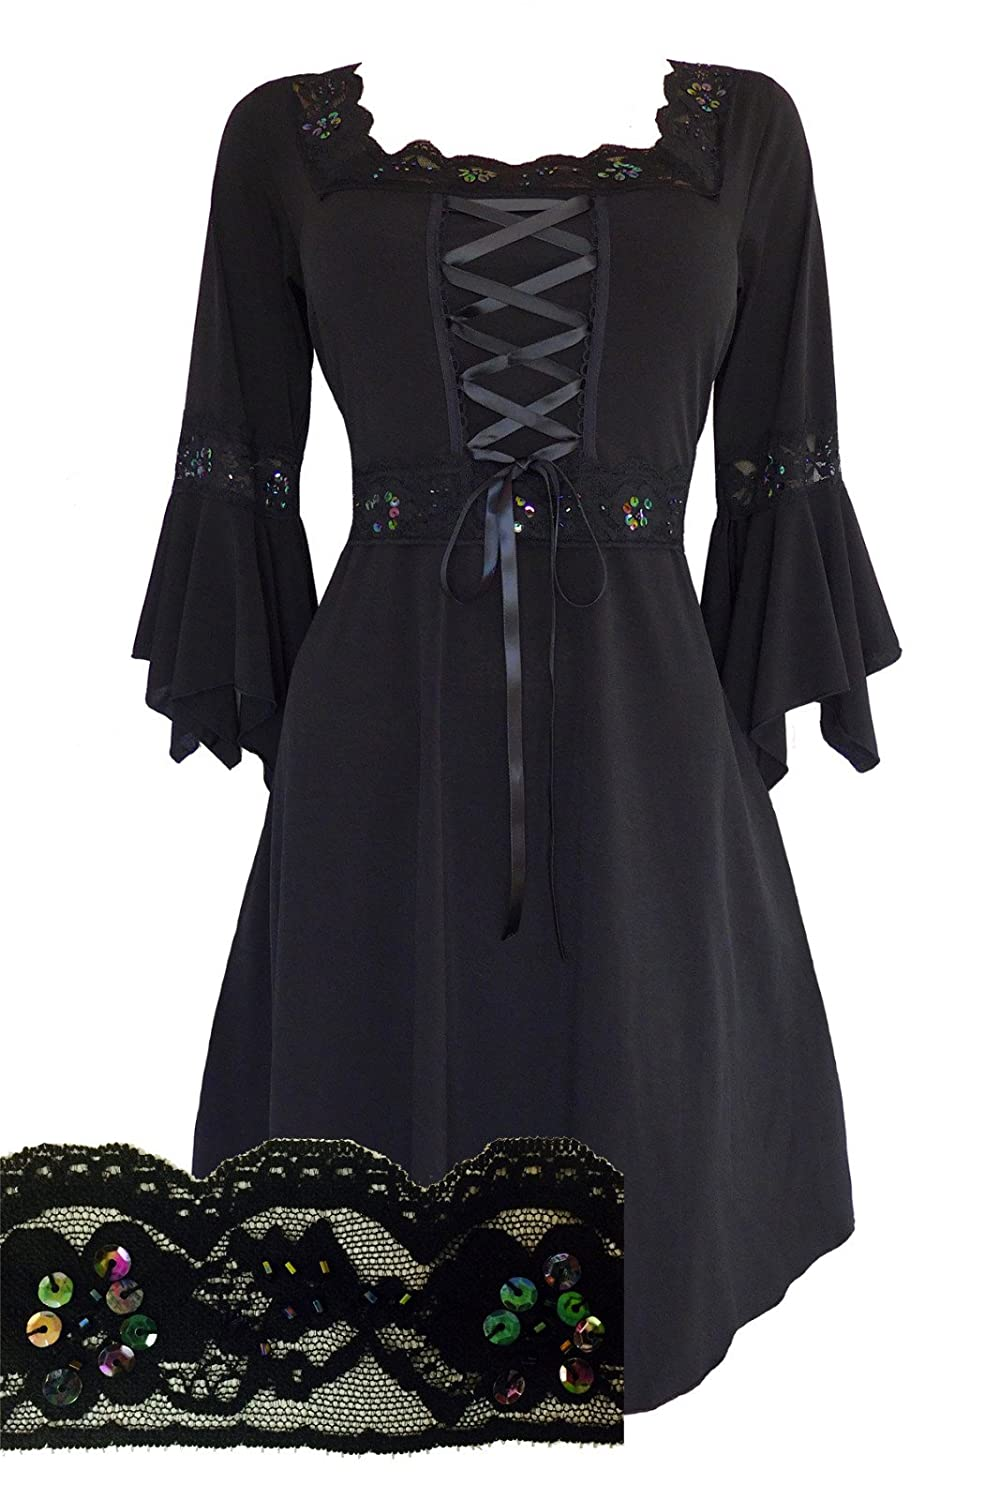 Steampunk Tops | Blouses, Shirts Dare To Wear Victorian Gothic Boho Womens Plus Size Renaissance Corset Dress $82.99 AT vintagedancer.com